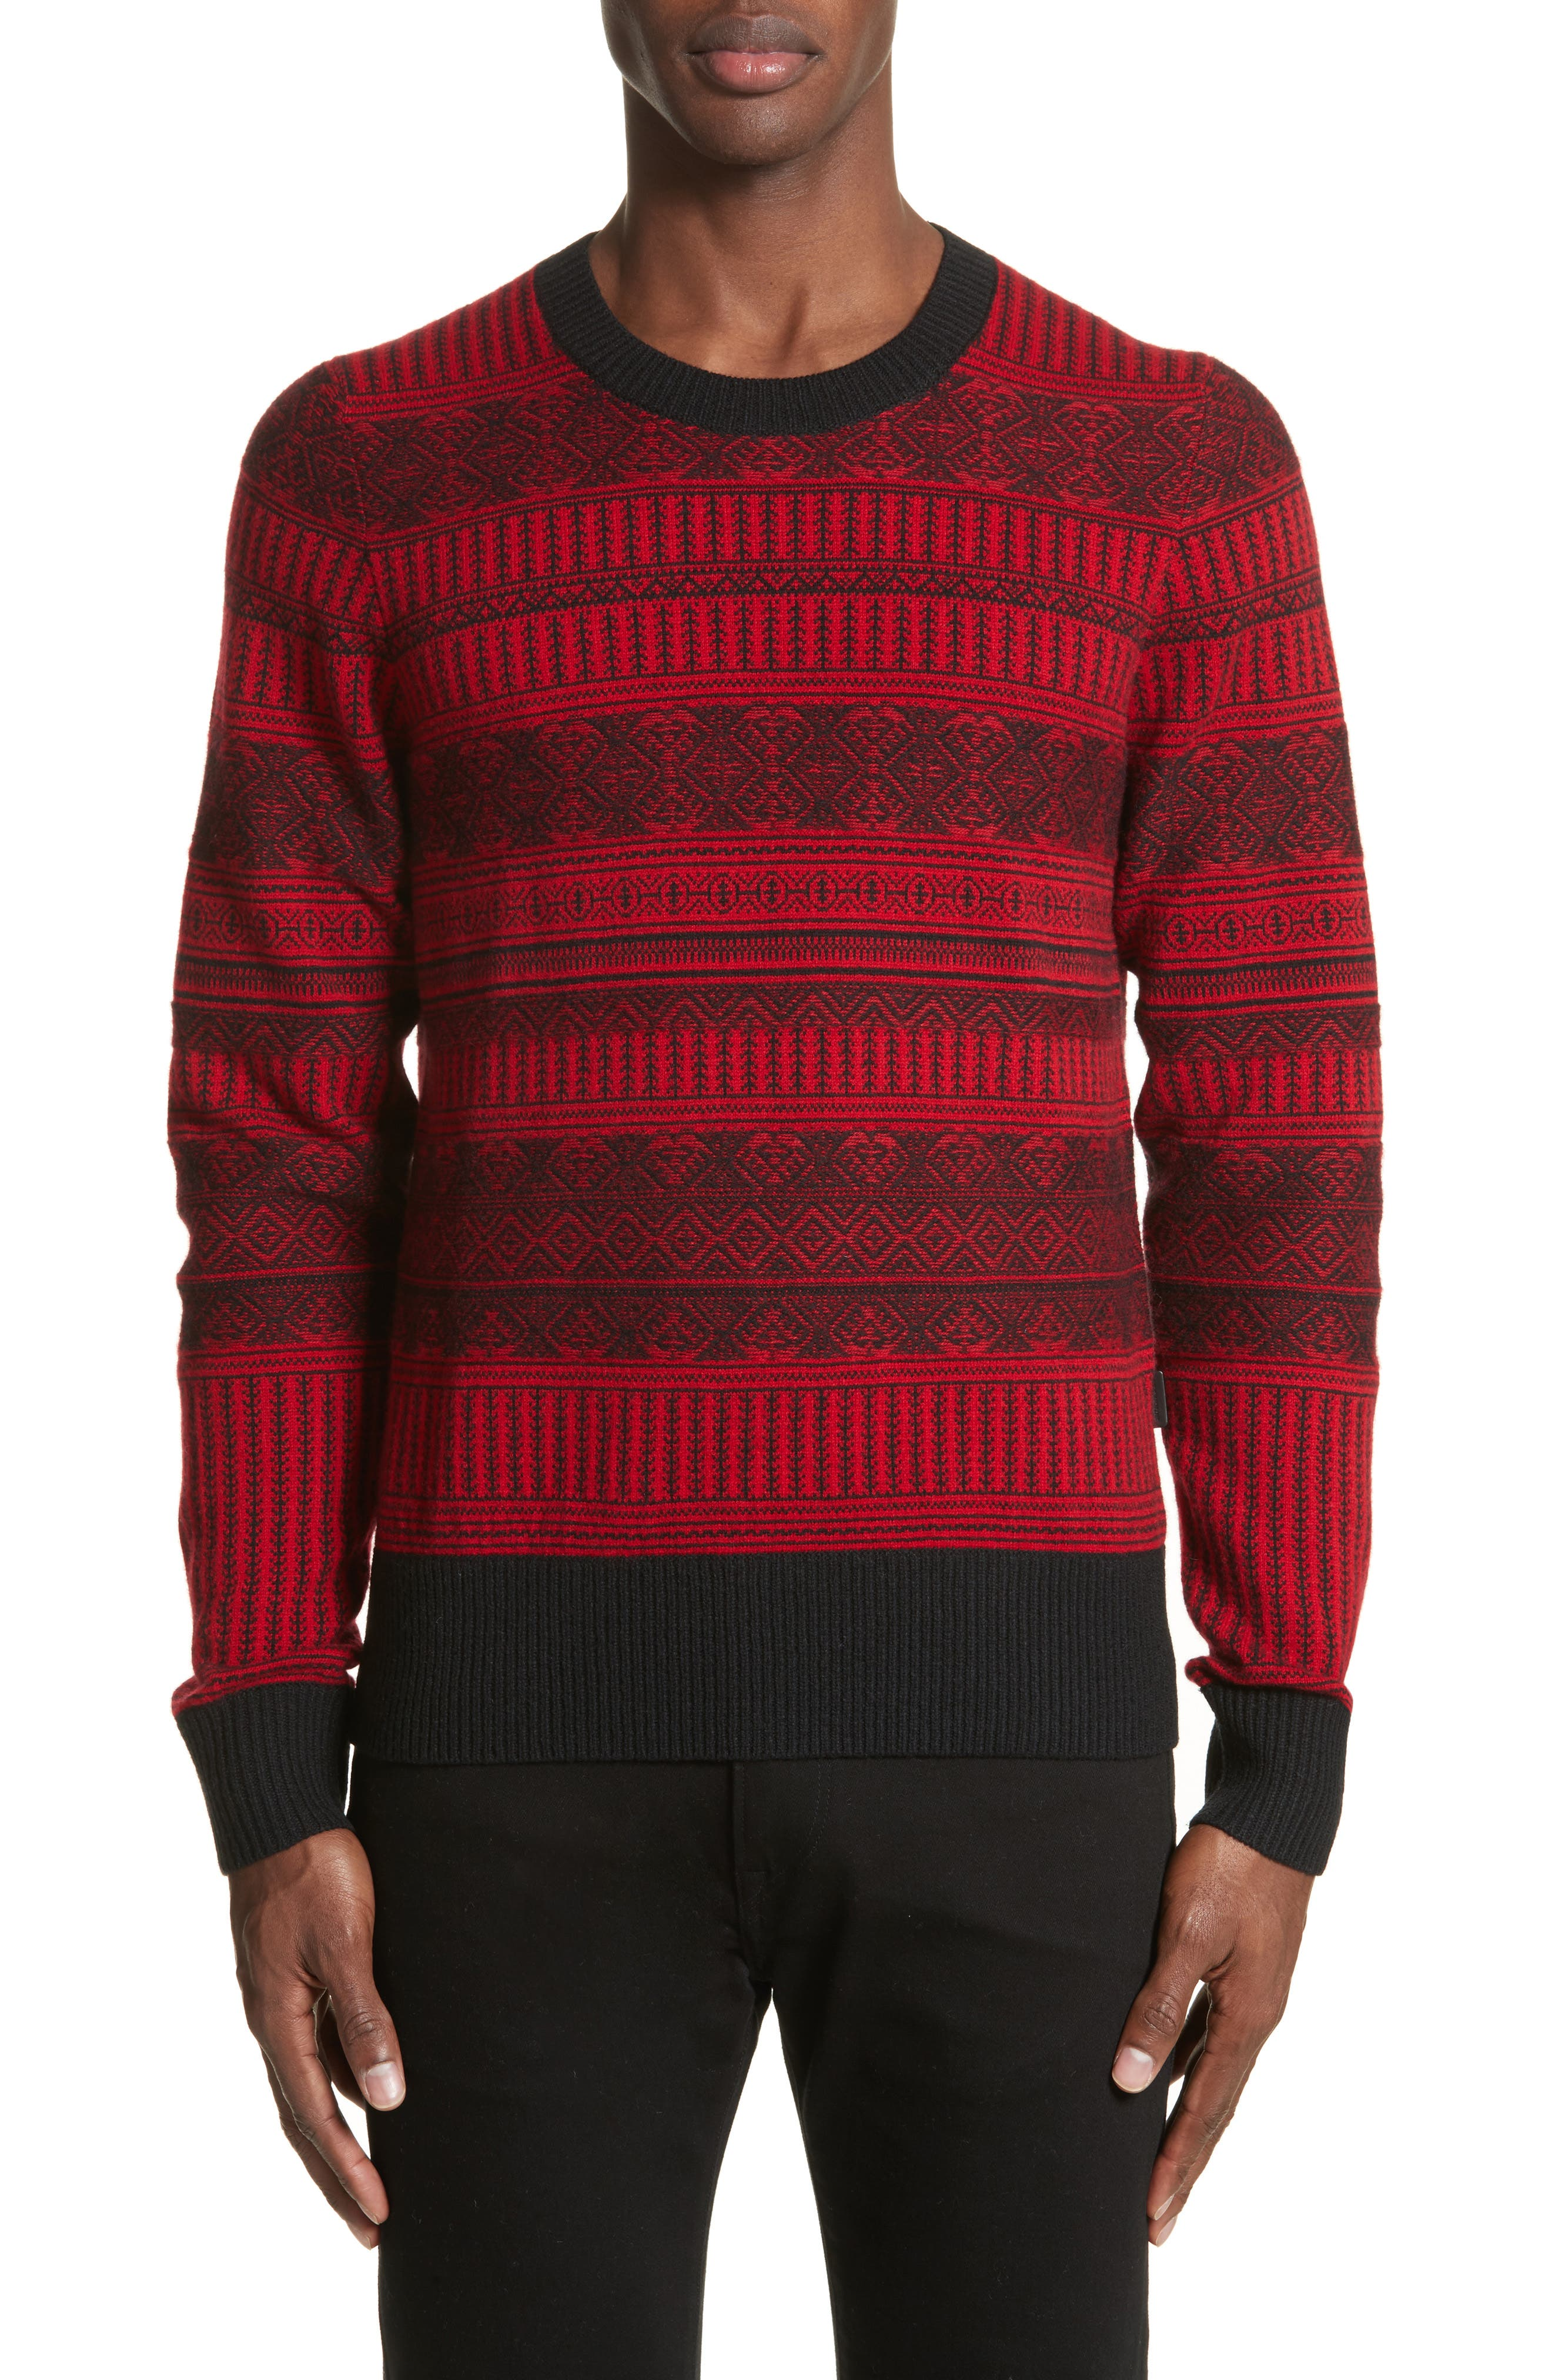 Tredway Wool & Cashmere Sweater,                             Main thumbnail 1, color,                             Military Red